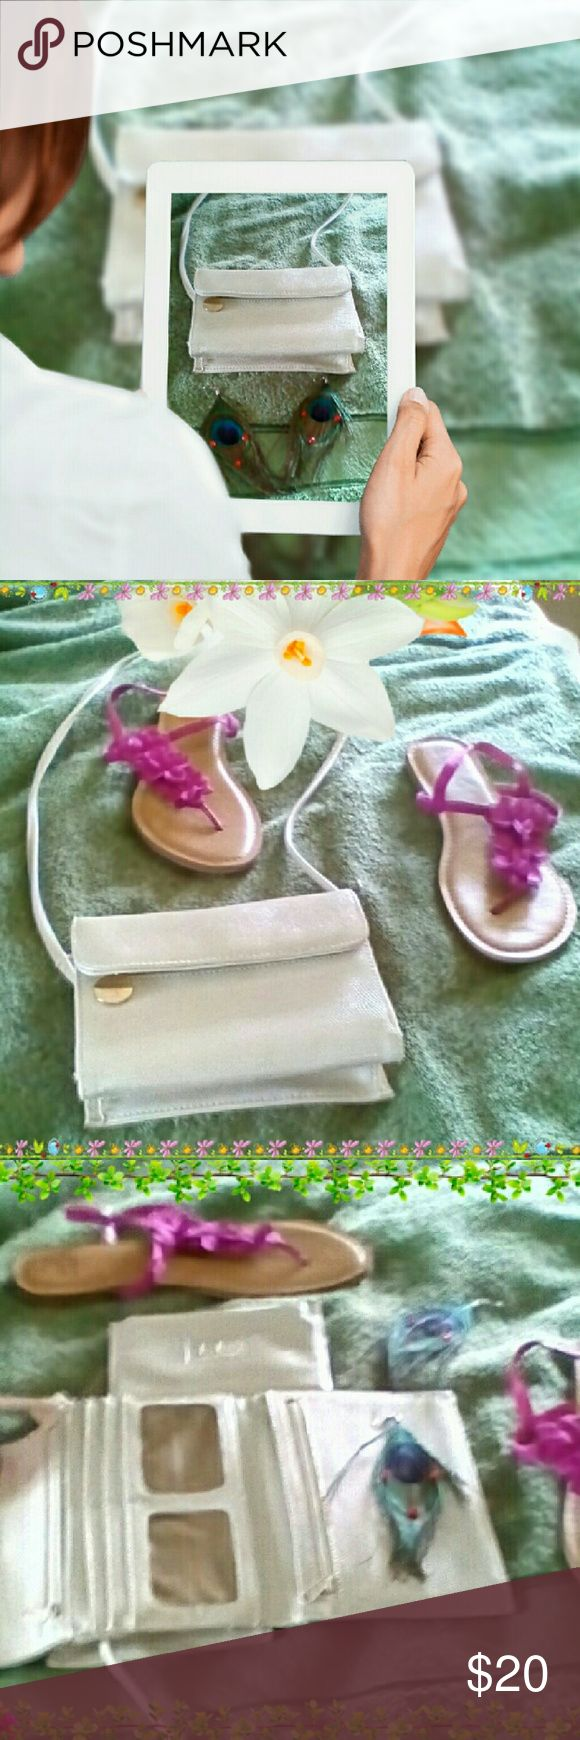 Liz Claiborne Crossbody Wallet ( Final Price Sale) White Liz Claiborne Crossbody Wallet with detachable magazine and room enough for all your credit cards. The wallet has lovely gold accents and zipper. Liz Claiborne Bags Wallets